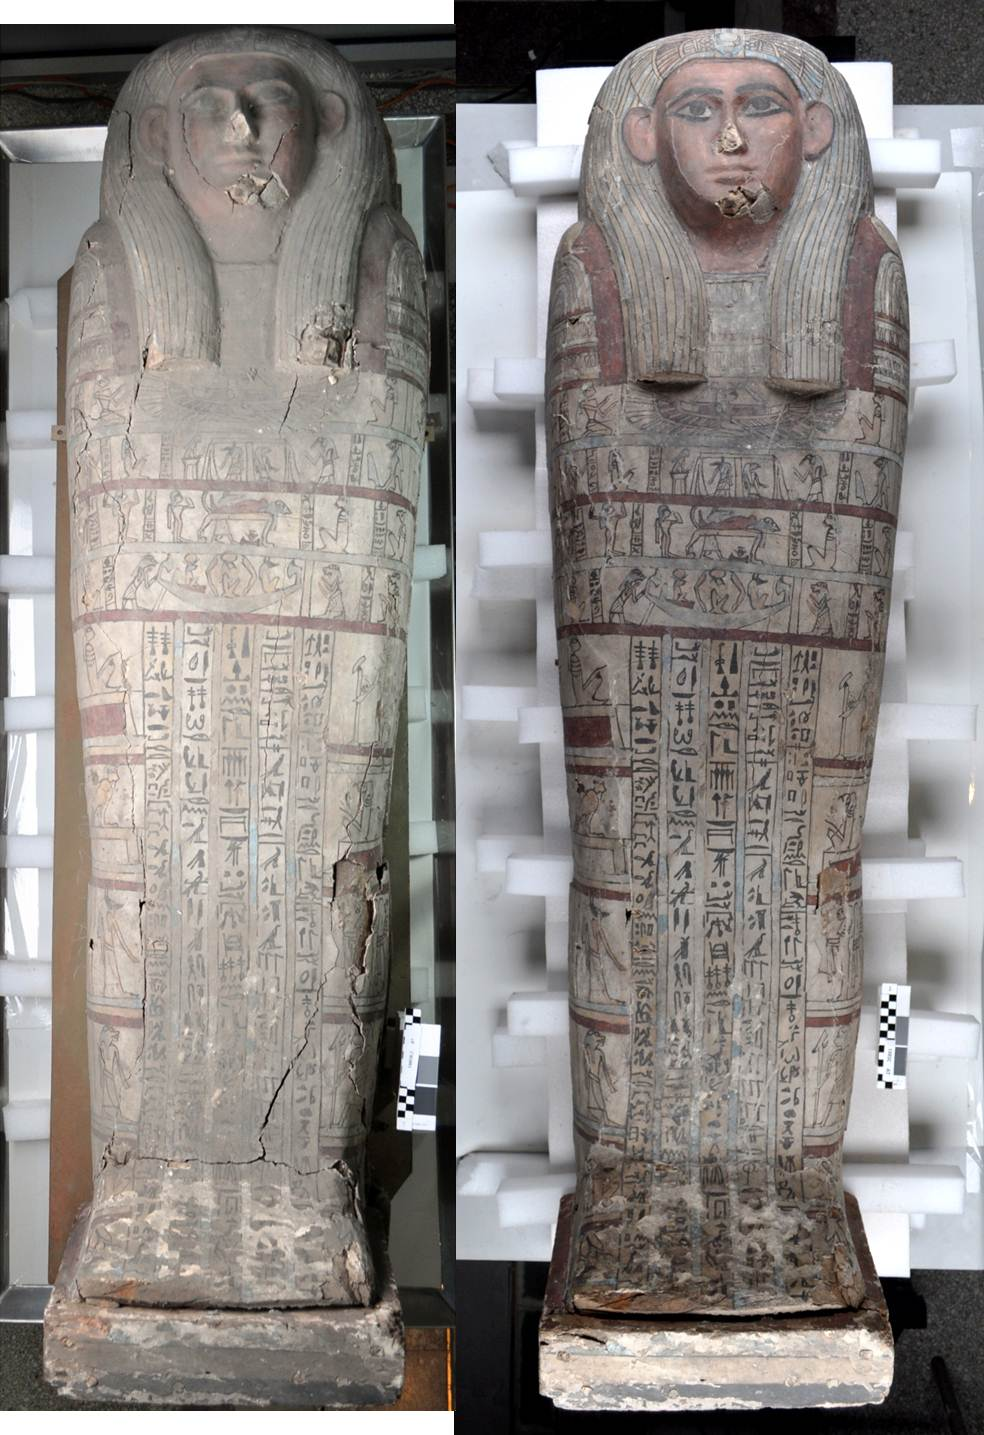 Tawahibre's coffin lid before (left) and after (right) conservation treatment